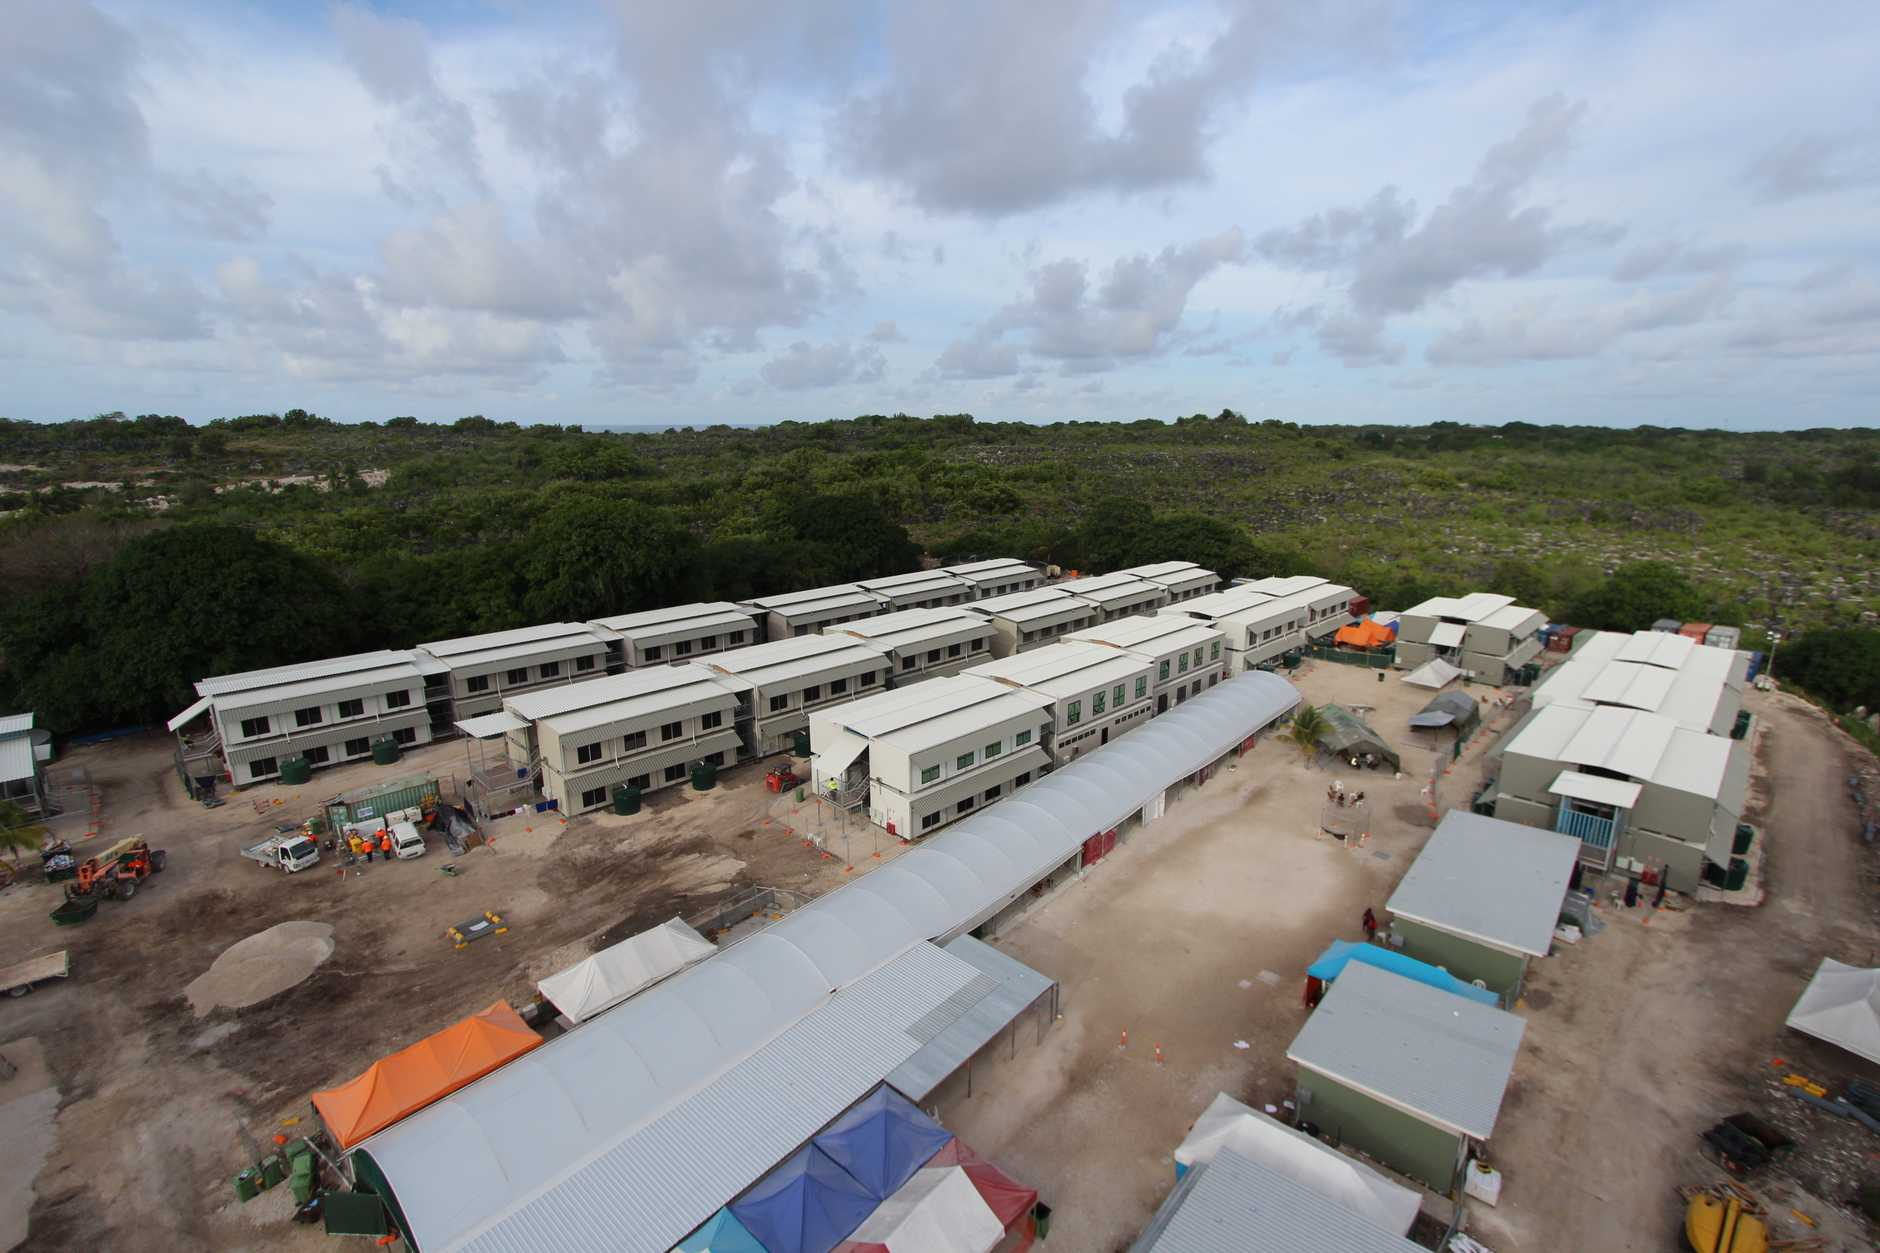 Lease agreements for Nauru's main refugee processing centre show that some Nauruan politicians have family members with interests in the 5.6 hectare site, which earns at least $480,000 in rent each year.